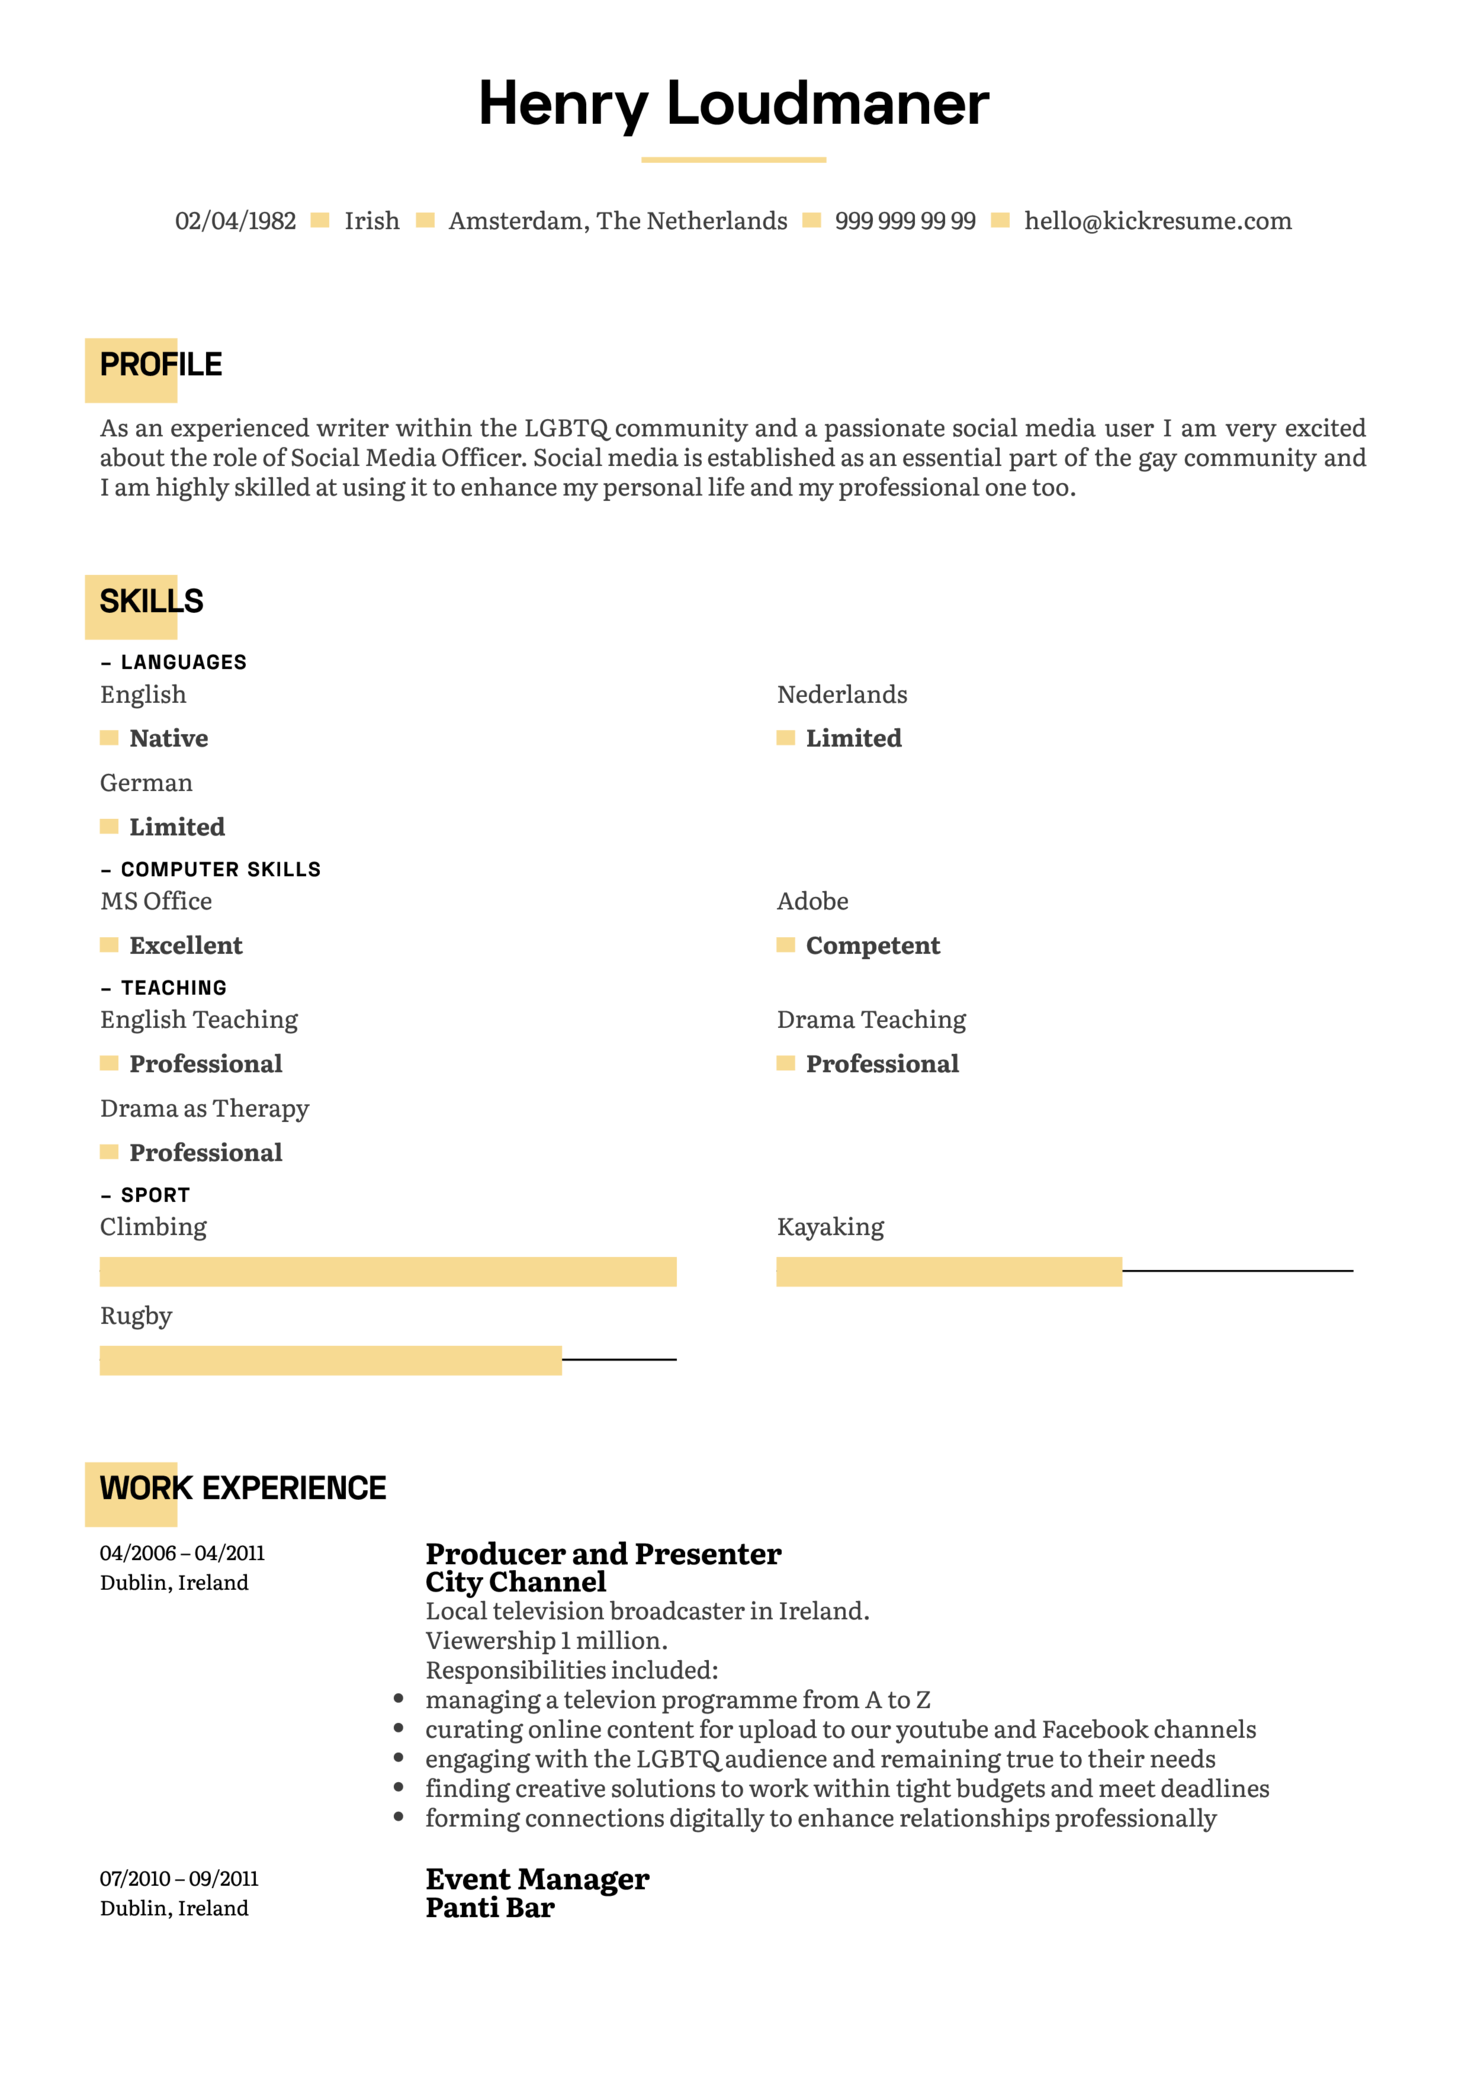 Producer and Presenter Resume Example